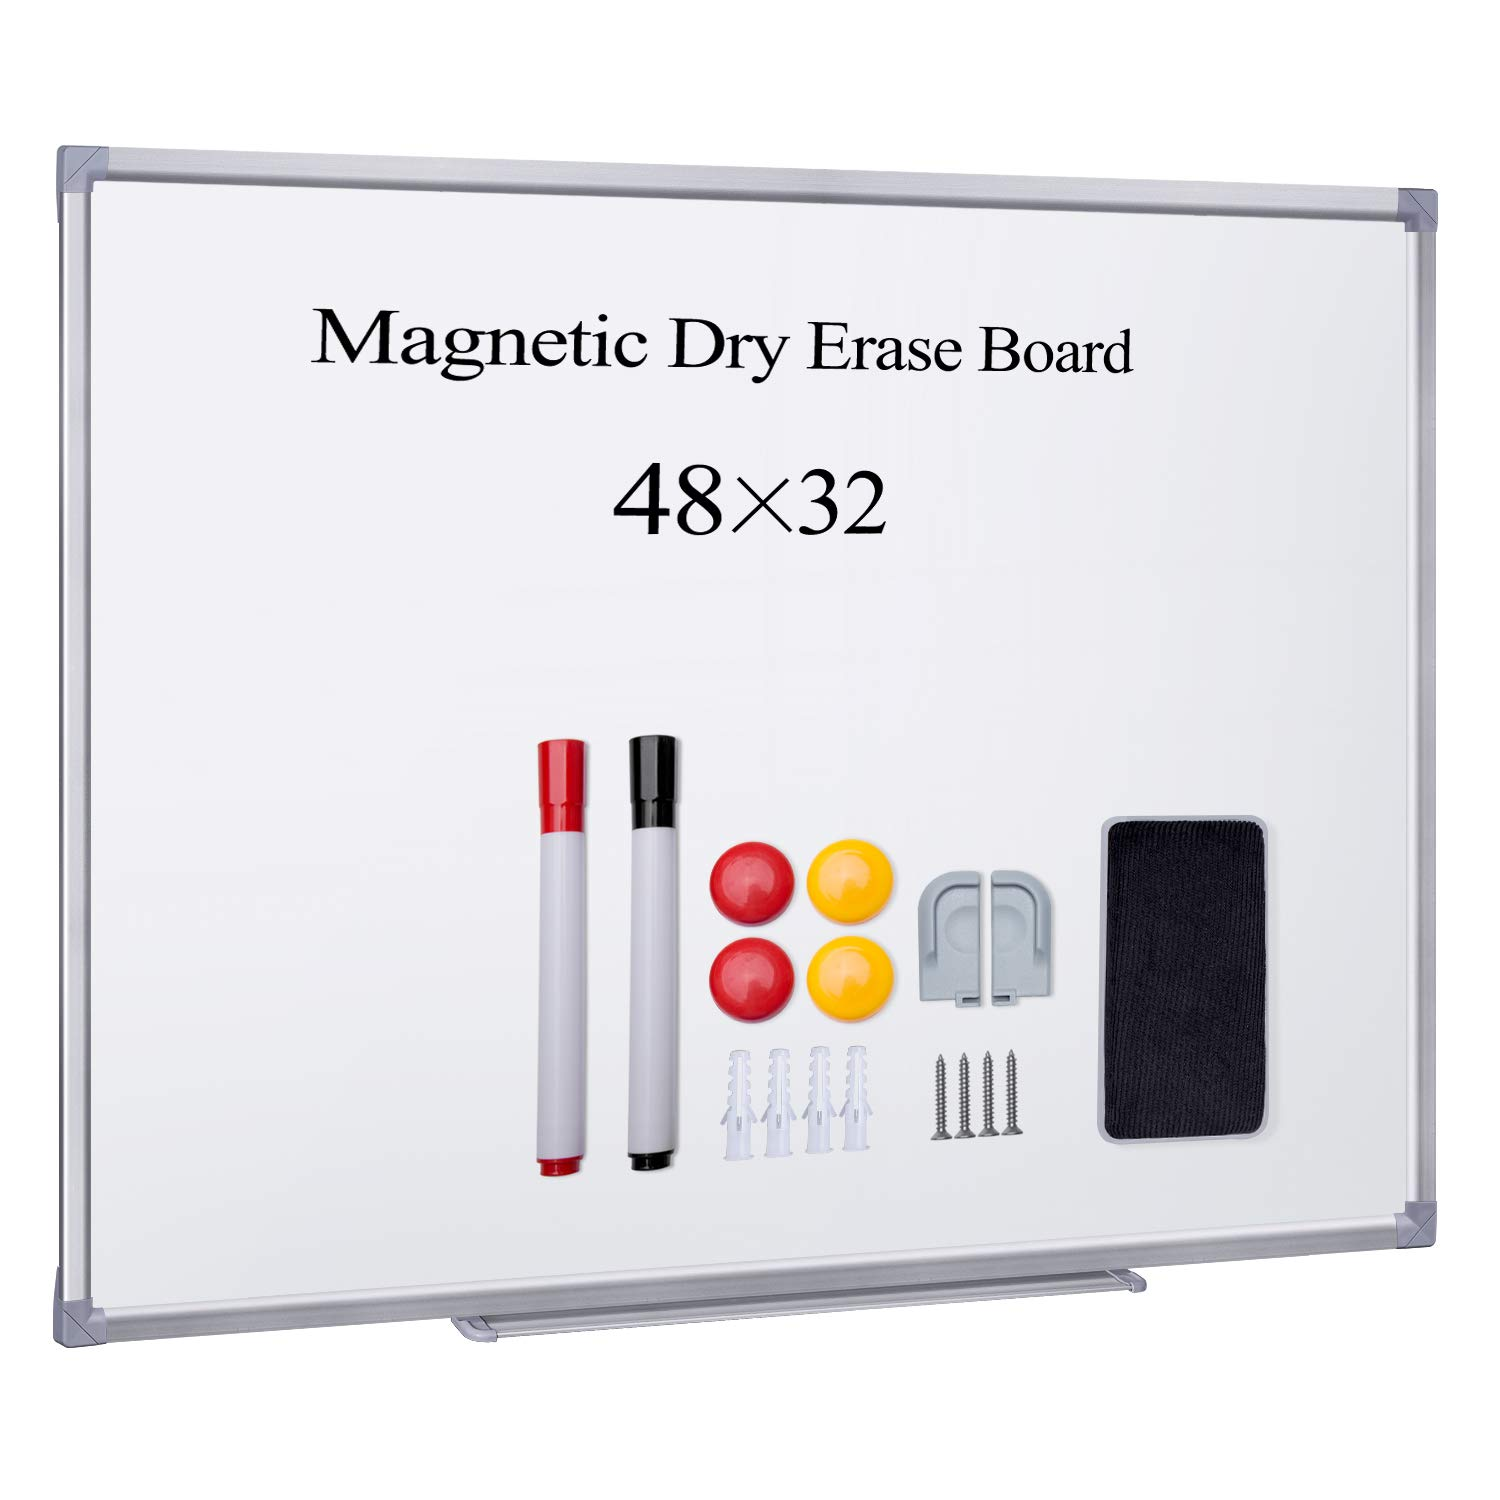 HBlife Magnetic Dry Erase Board,48x32 Inches Magnetic Whiteboard Wall Mounted Silver Aluminium Frame with 1 Magnetic Eraser,1 Marker Tray,2 Dry Erase Marker,4 Magnets for School, Home, Office